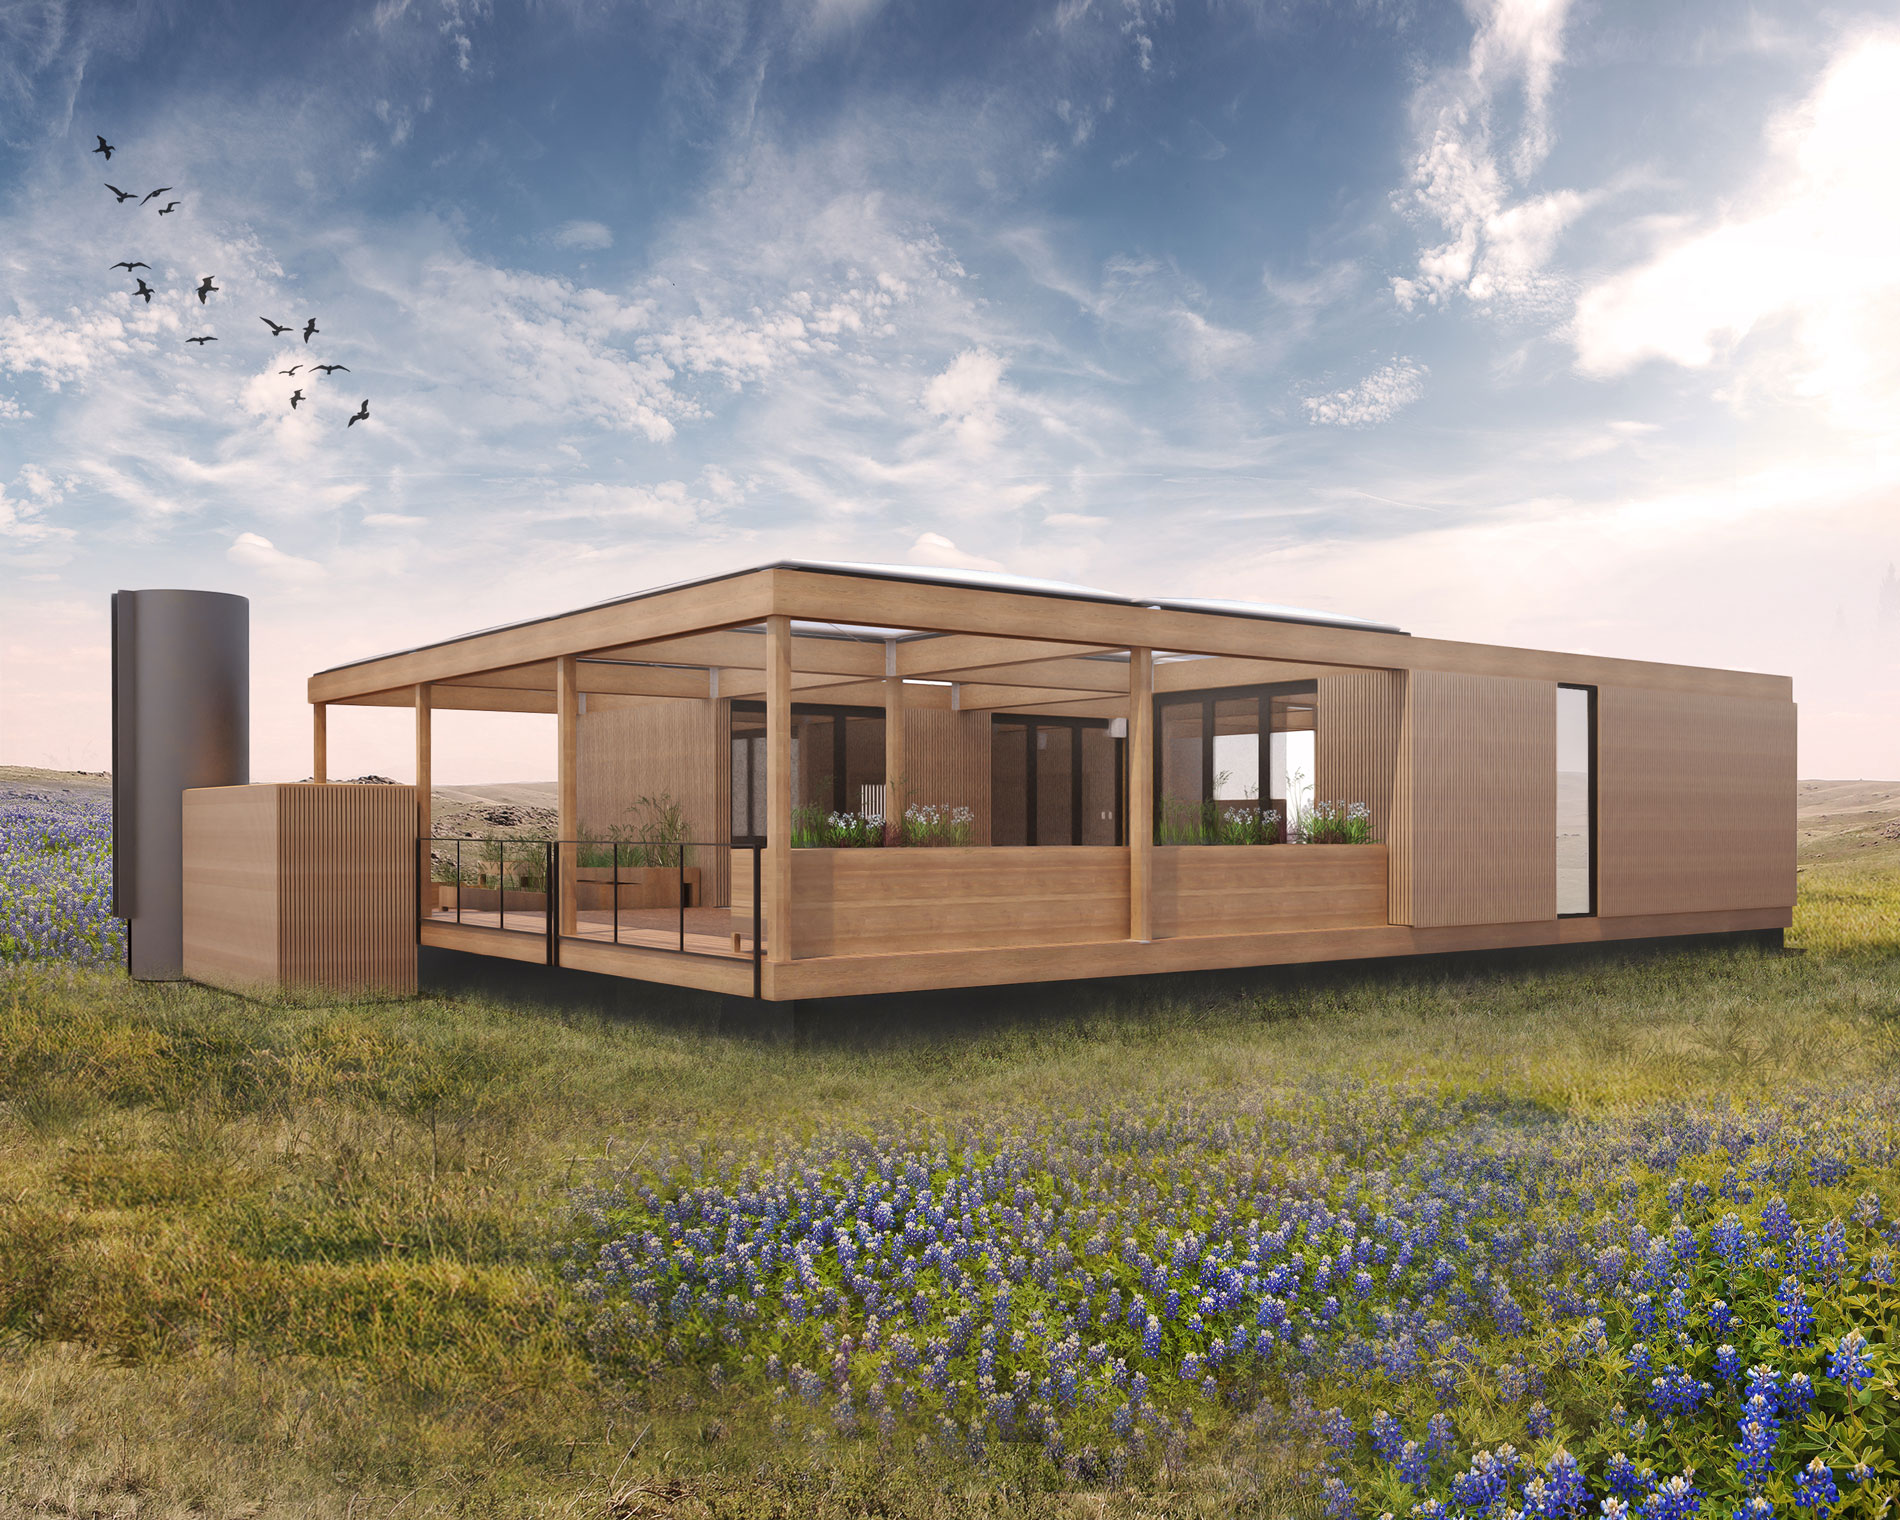 Texas modular home will run on rainwater and sunshine for Modern home builder magazine